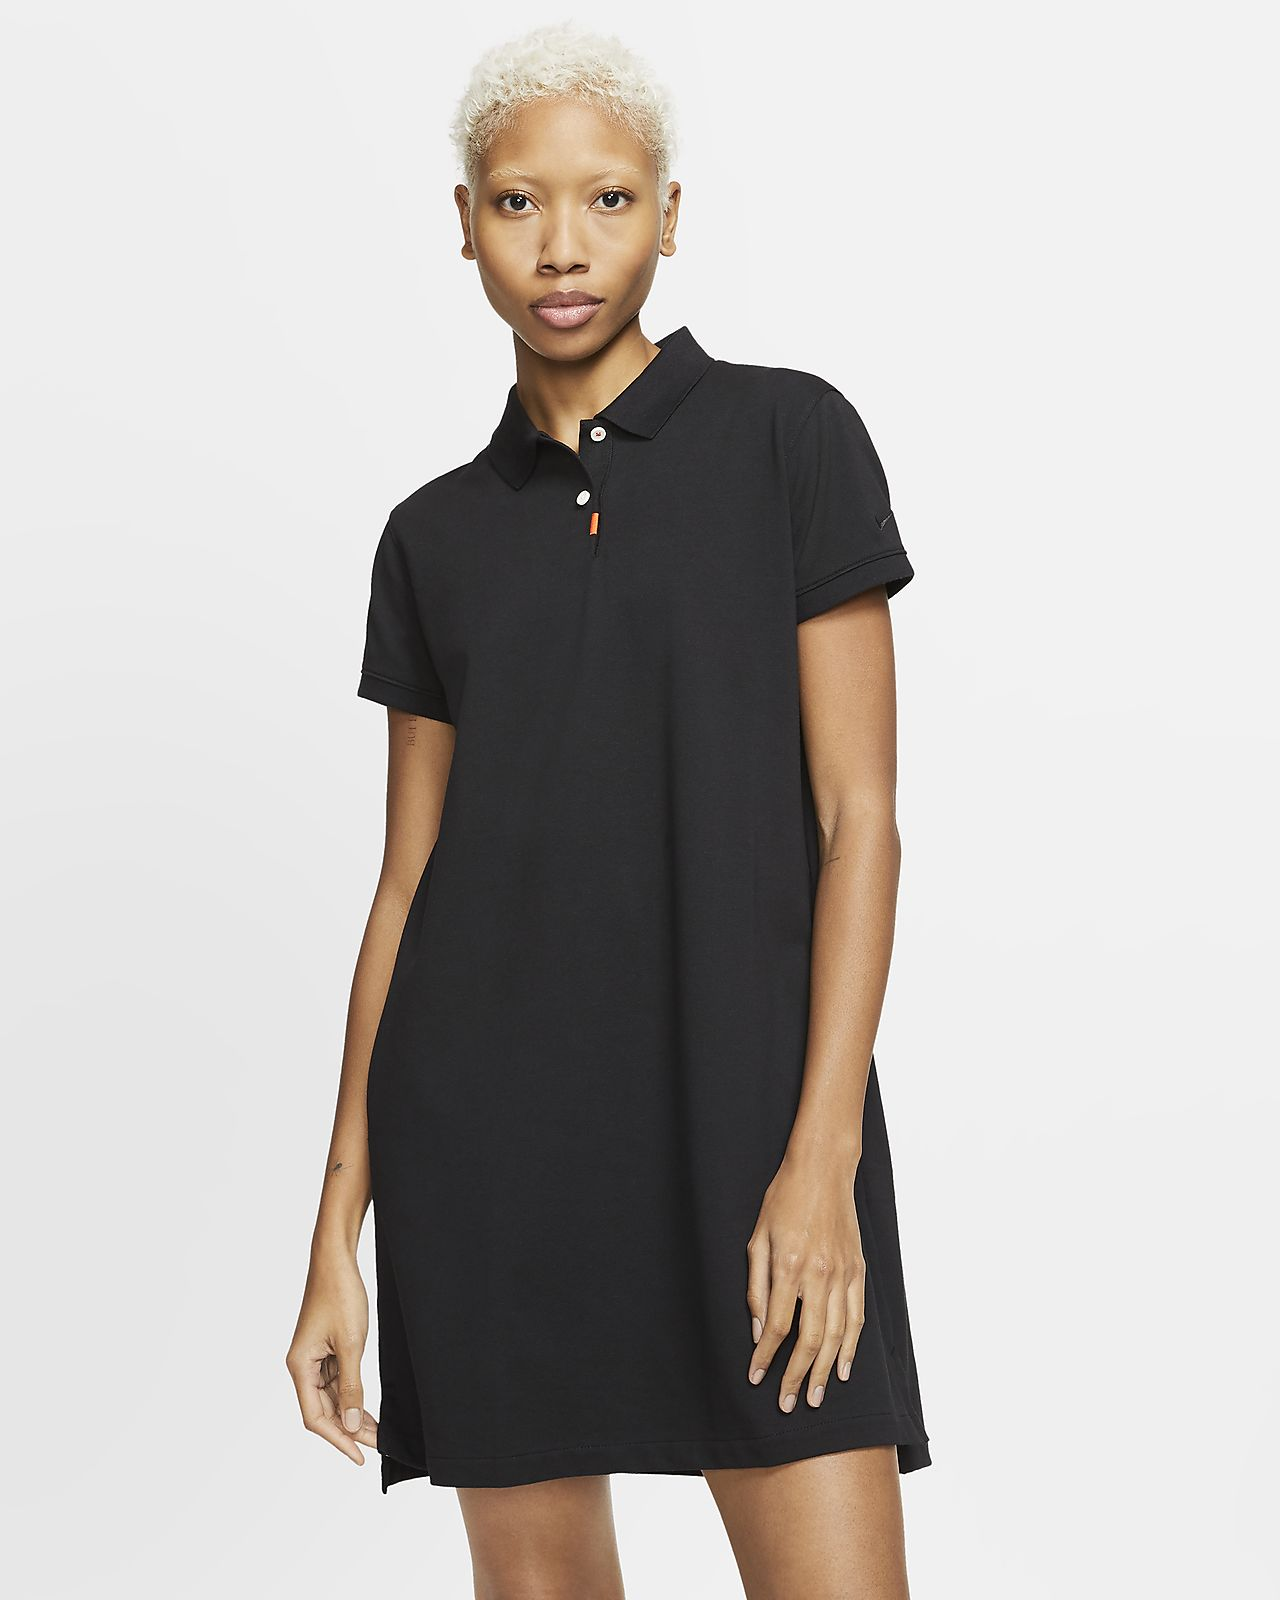 The Nike Polo Women's Dress